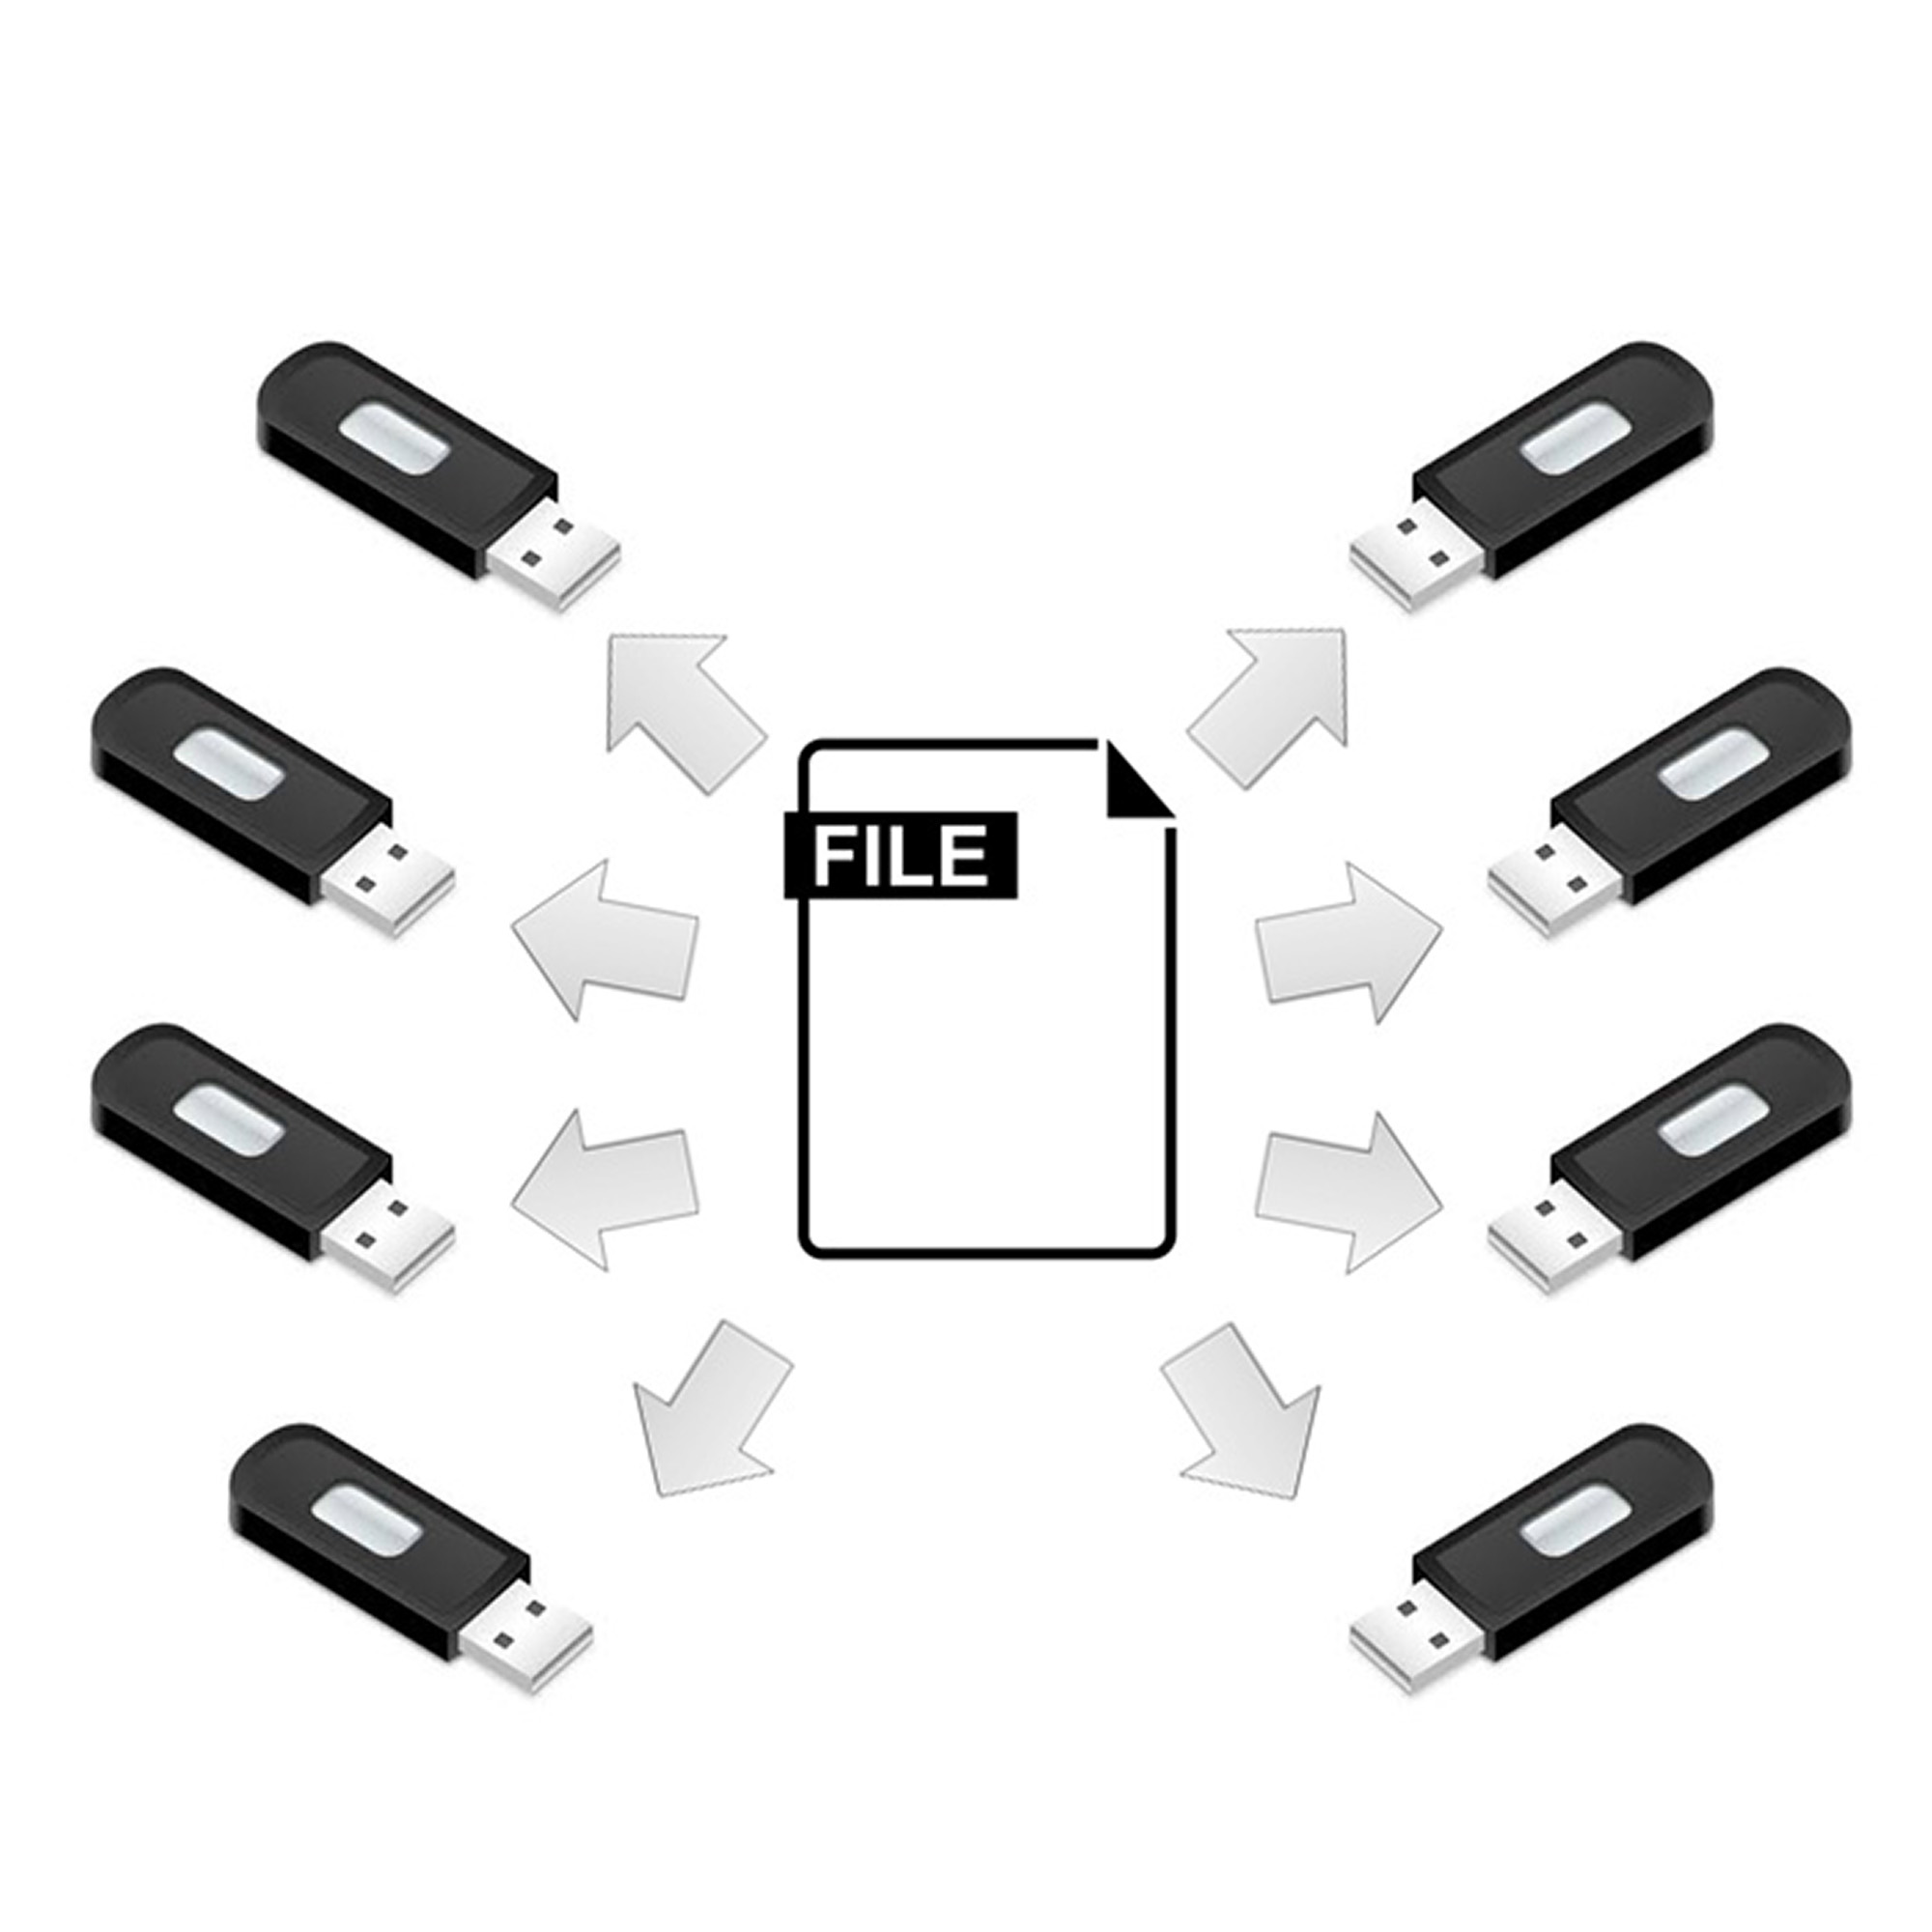 Order this service if you wish to get your USB drives preloaded with your own selected files. An excellent service if you wish to order USB memories that you directly can distribute to customers or internal staff with preloaded files.